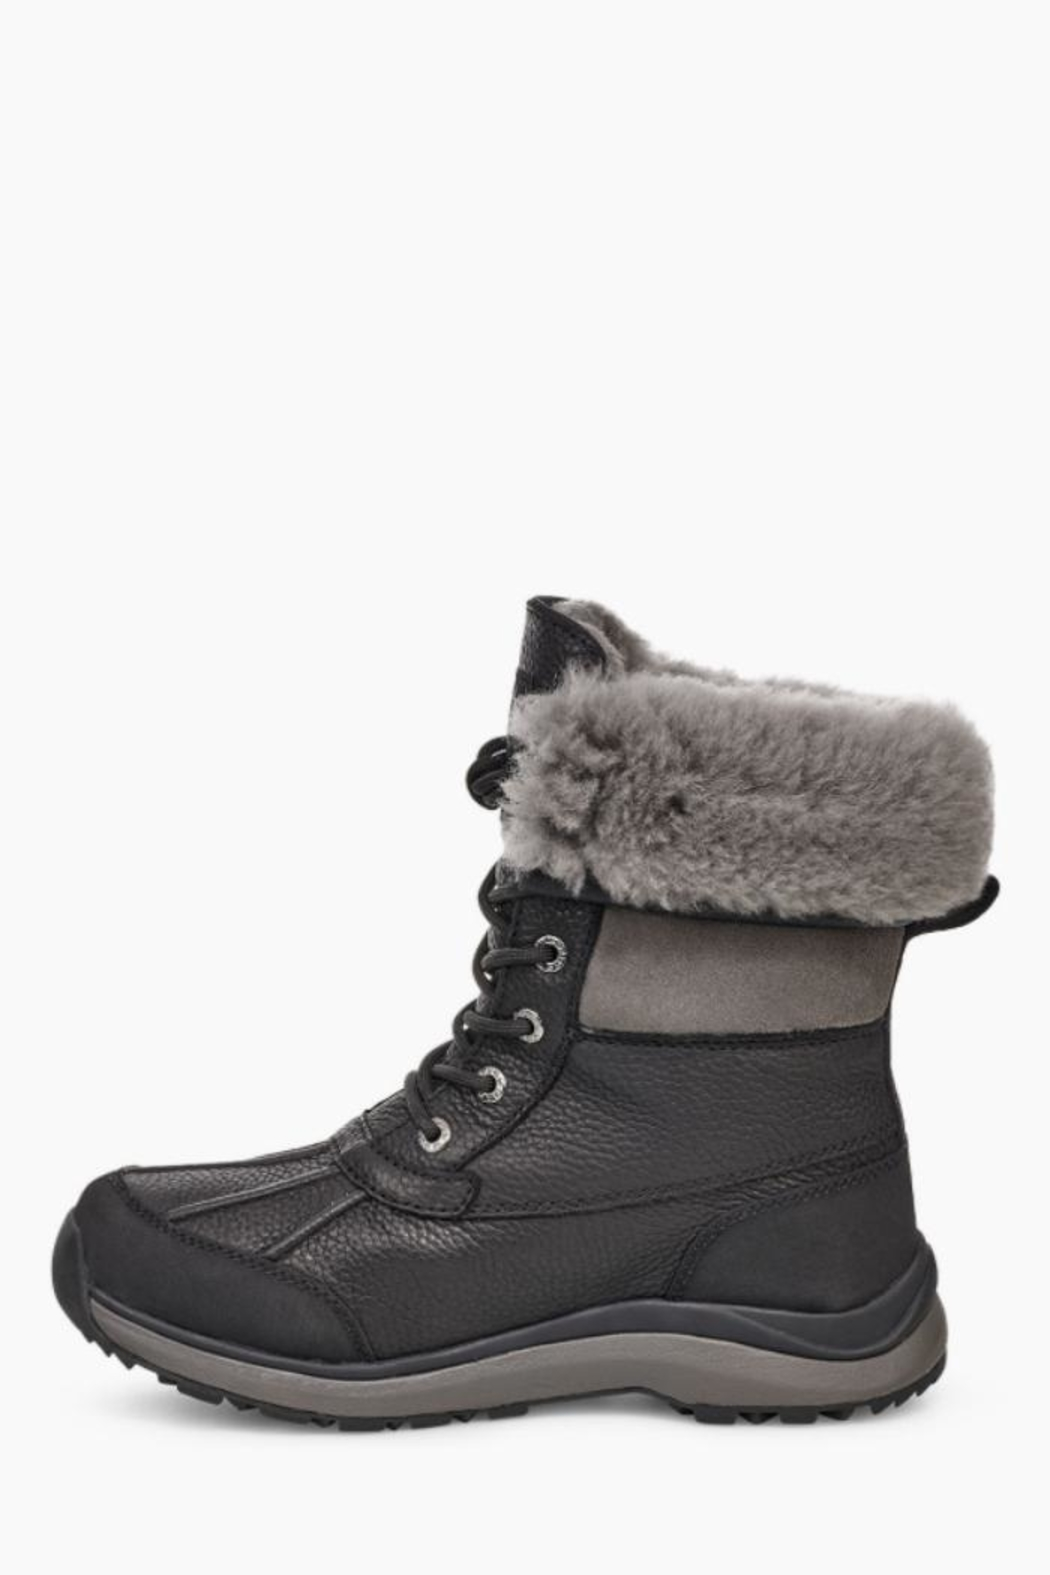 ee7d07db62 UGG Australia Adirondack Iii Boots from Montreal by Boutique TAG ...